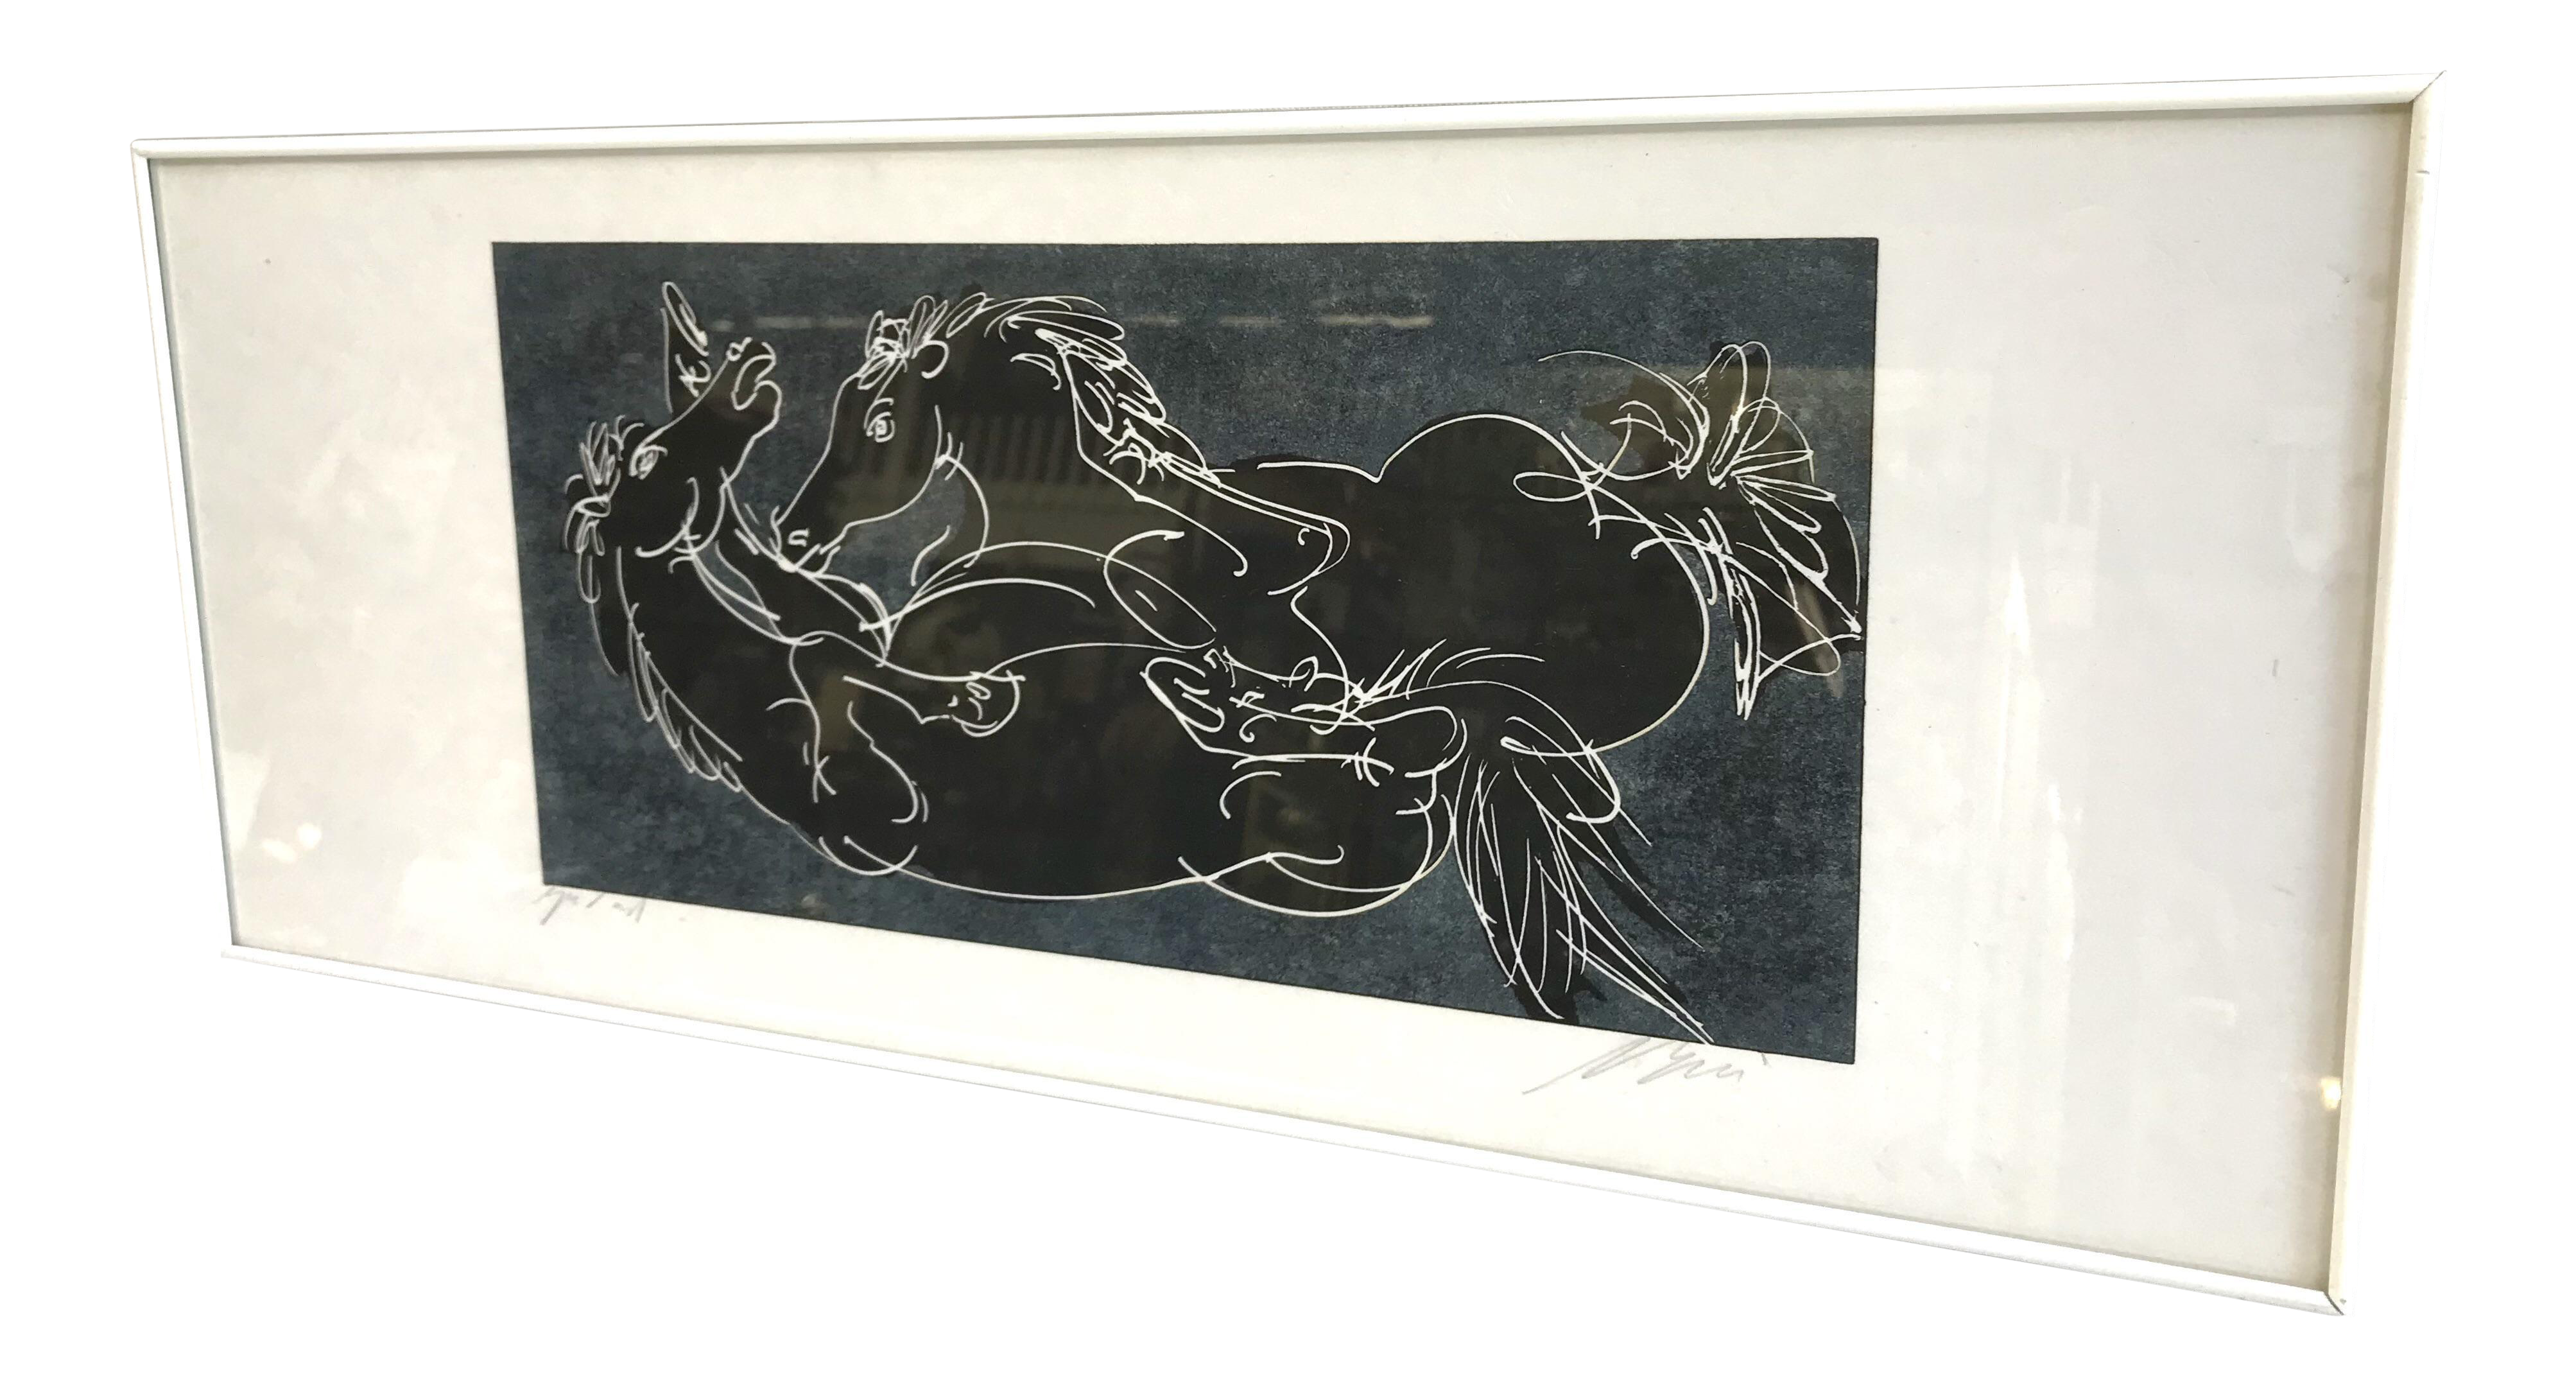 Relief drawing abstract. Framed print of two